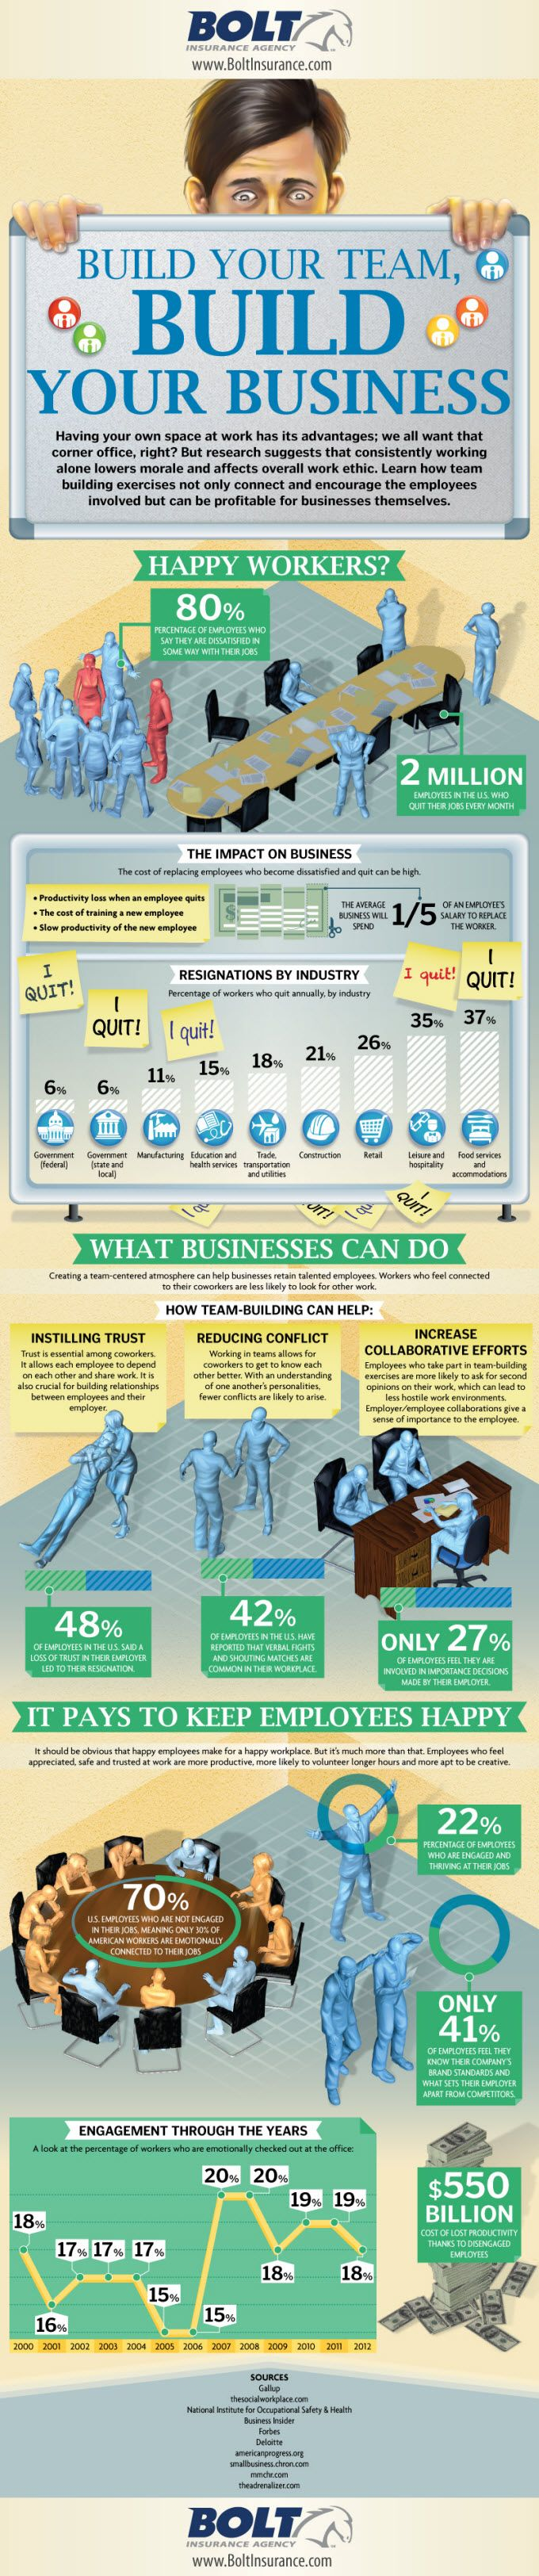 Uncategorized small business ideas small businesses ehow home business ideas to startsmall business ideas bad good ugly ideas - The Importance Of Team Building Infographic Is One Of The Best Infographics Created In The Business Category Check Out The Importance Of Team Building Now